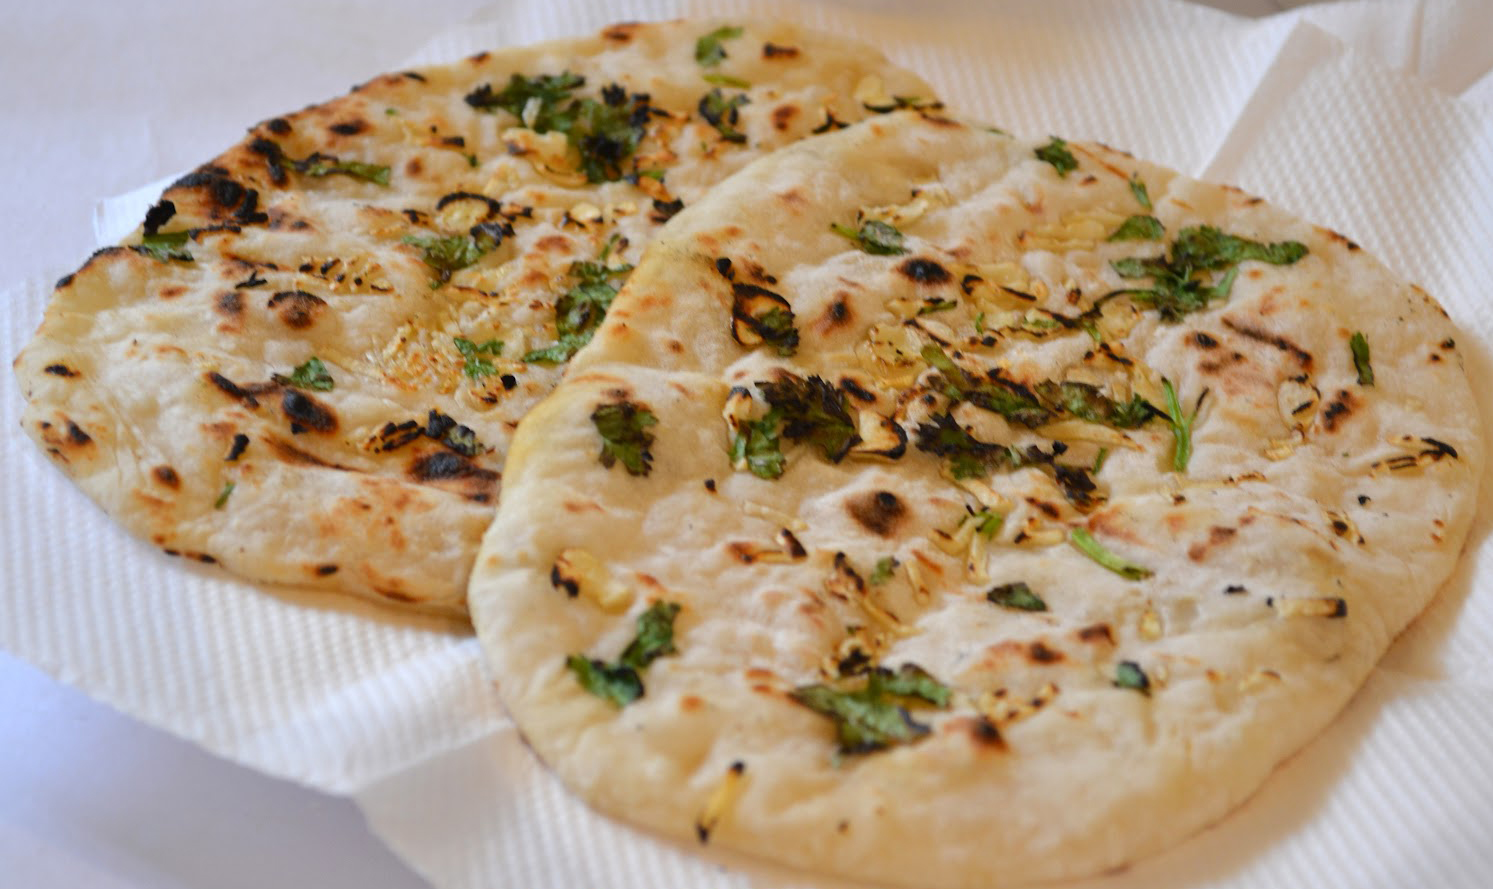 Chilli garlic Naan Image